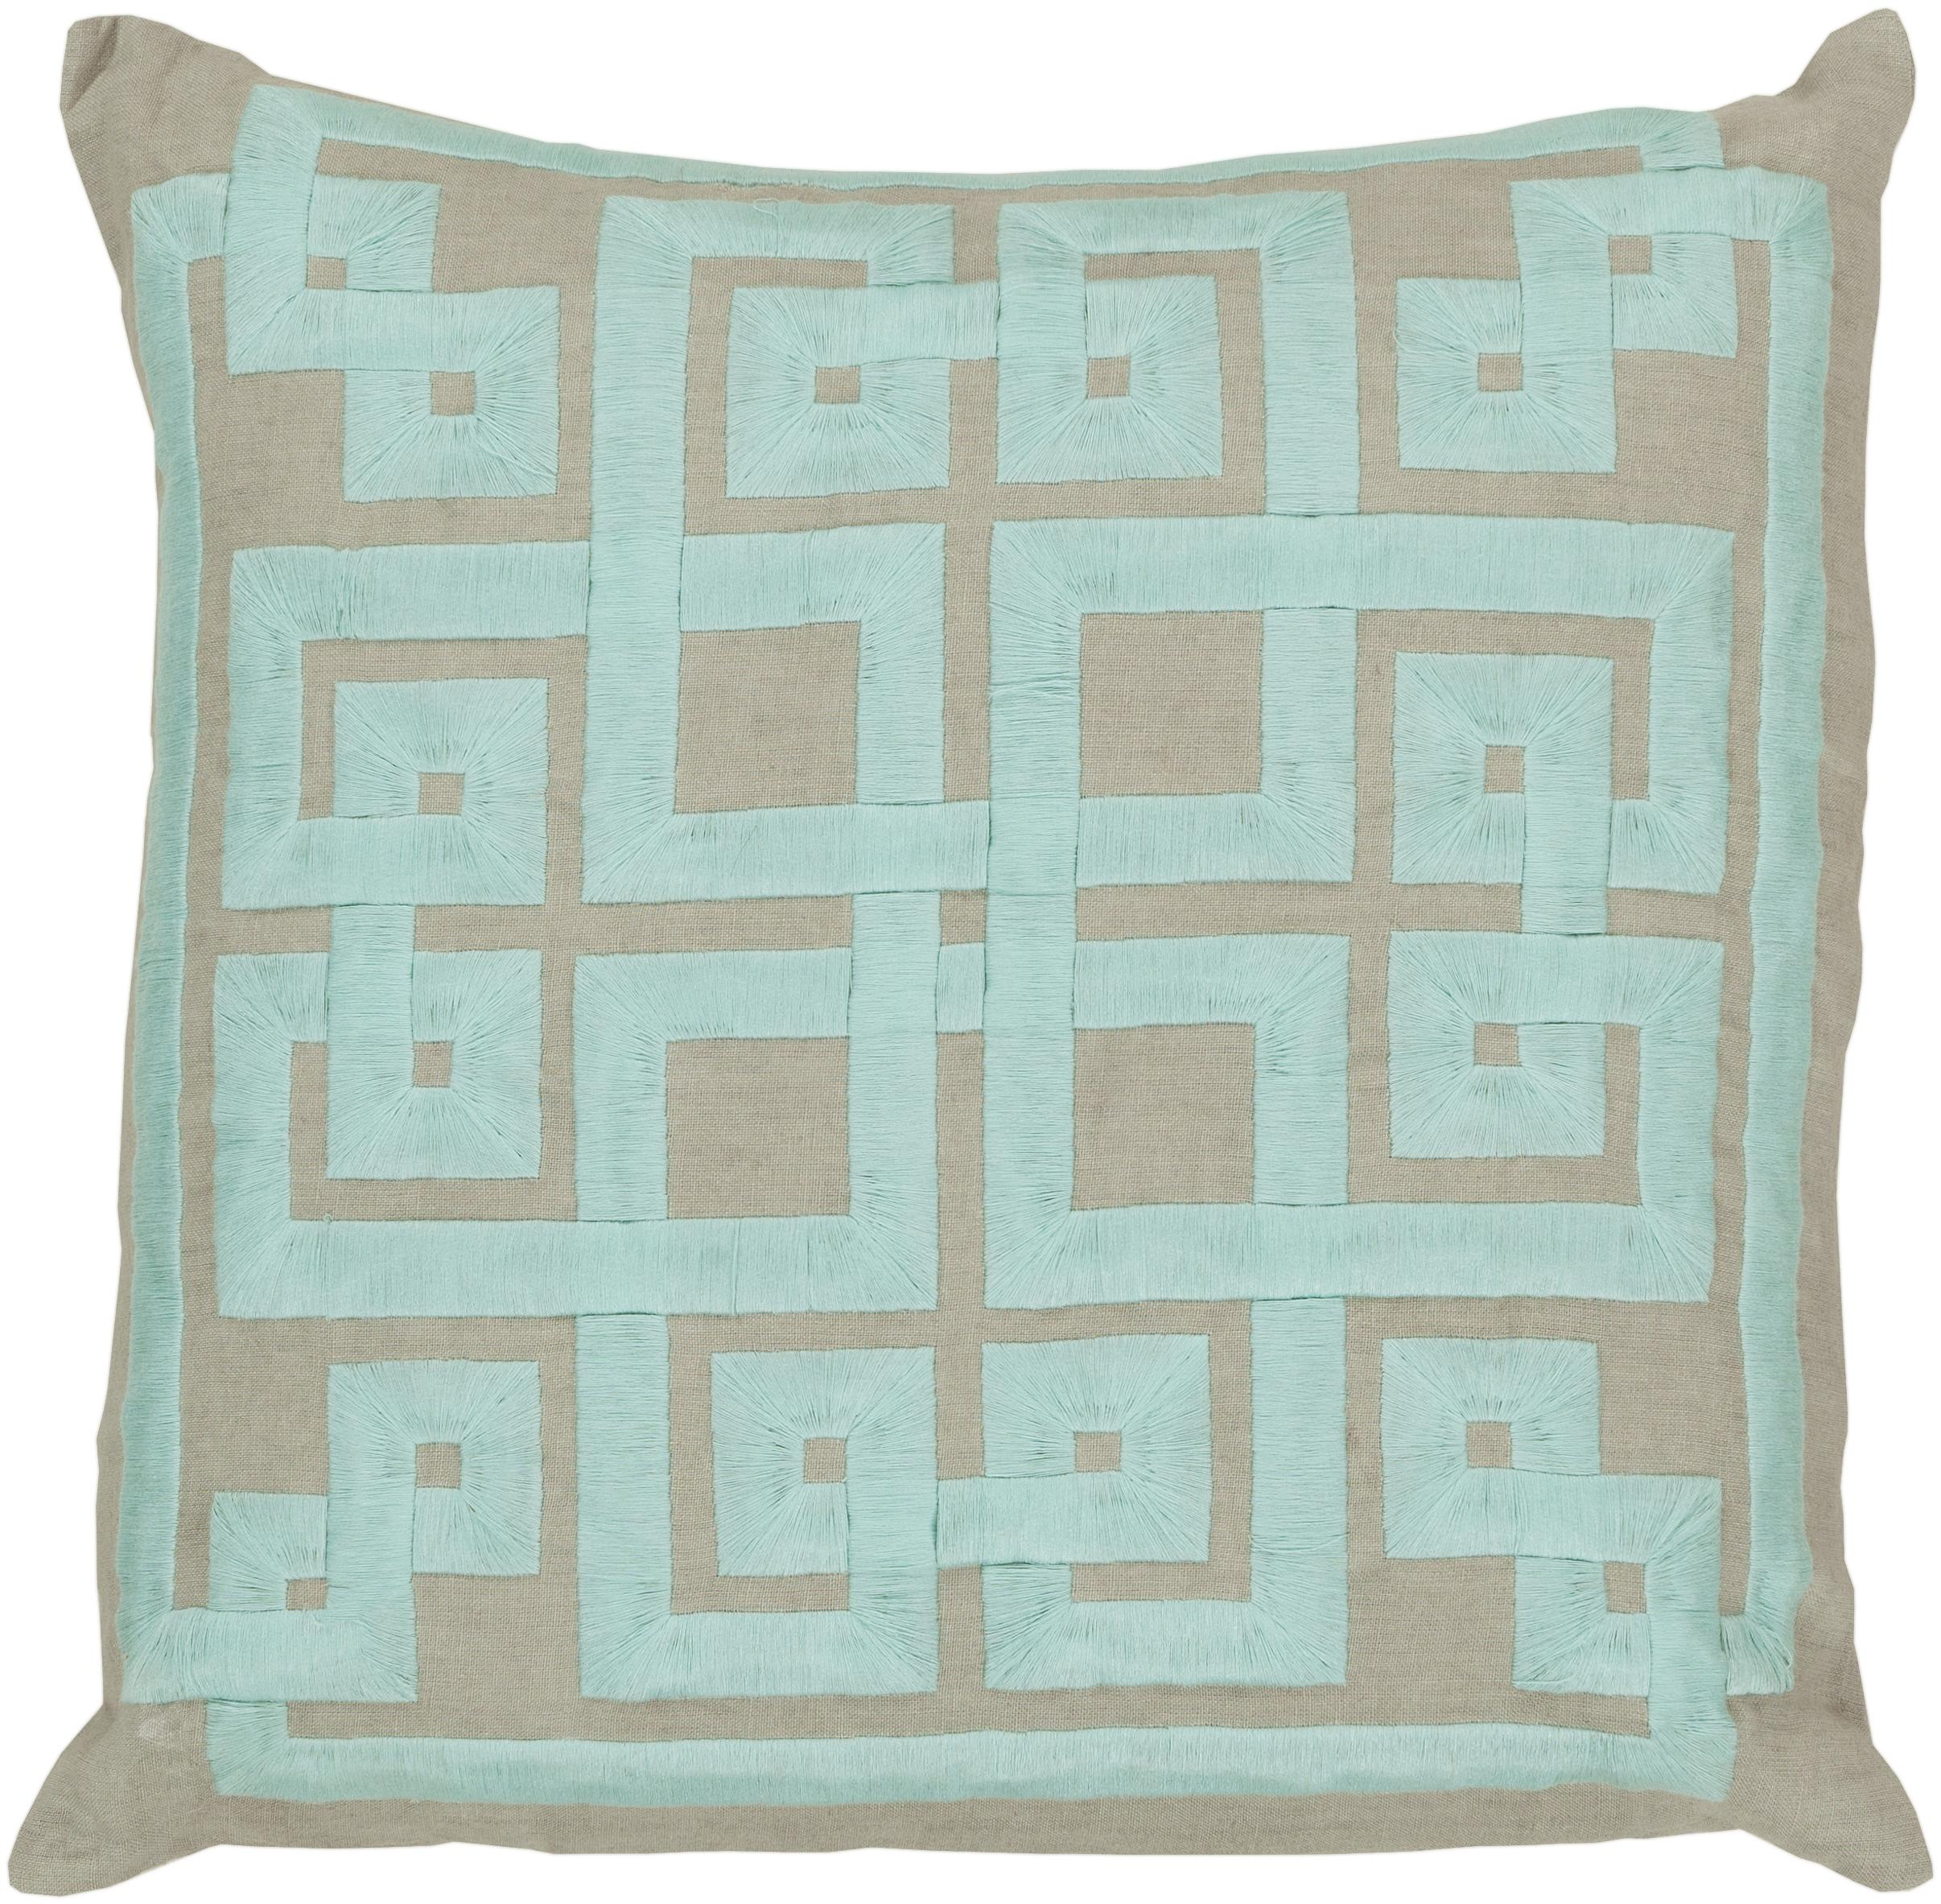 "Surya Rugs Pillows 22"" x 22"" Pillow - Item Number: LD010-2222P"